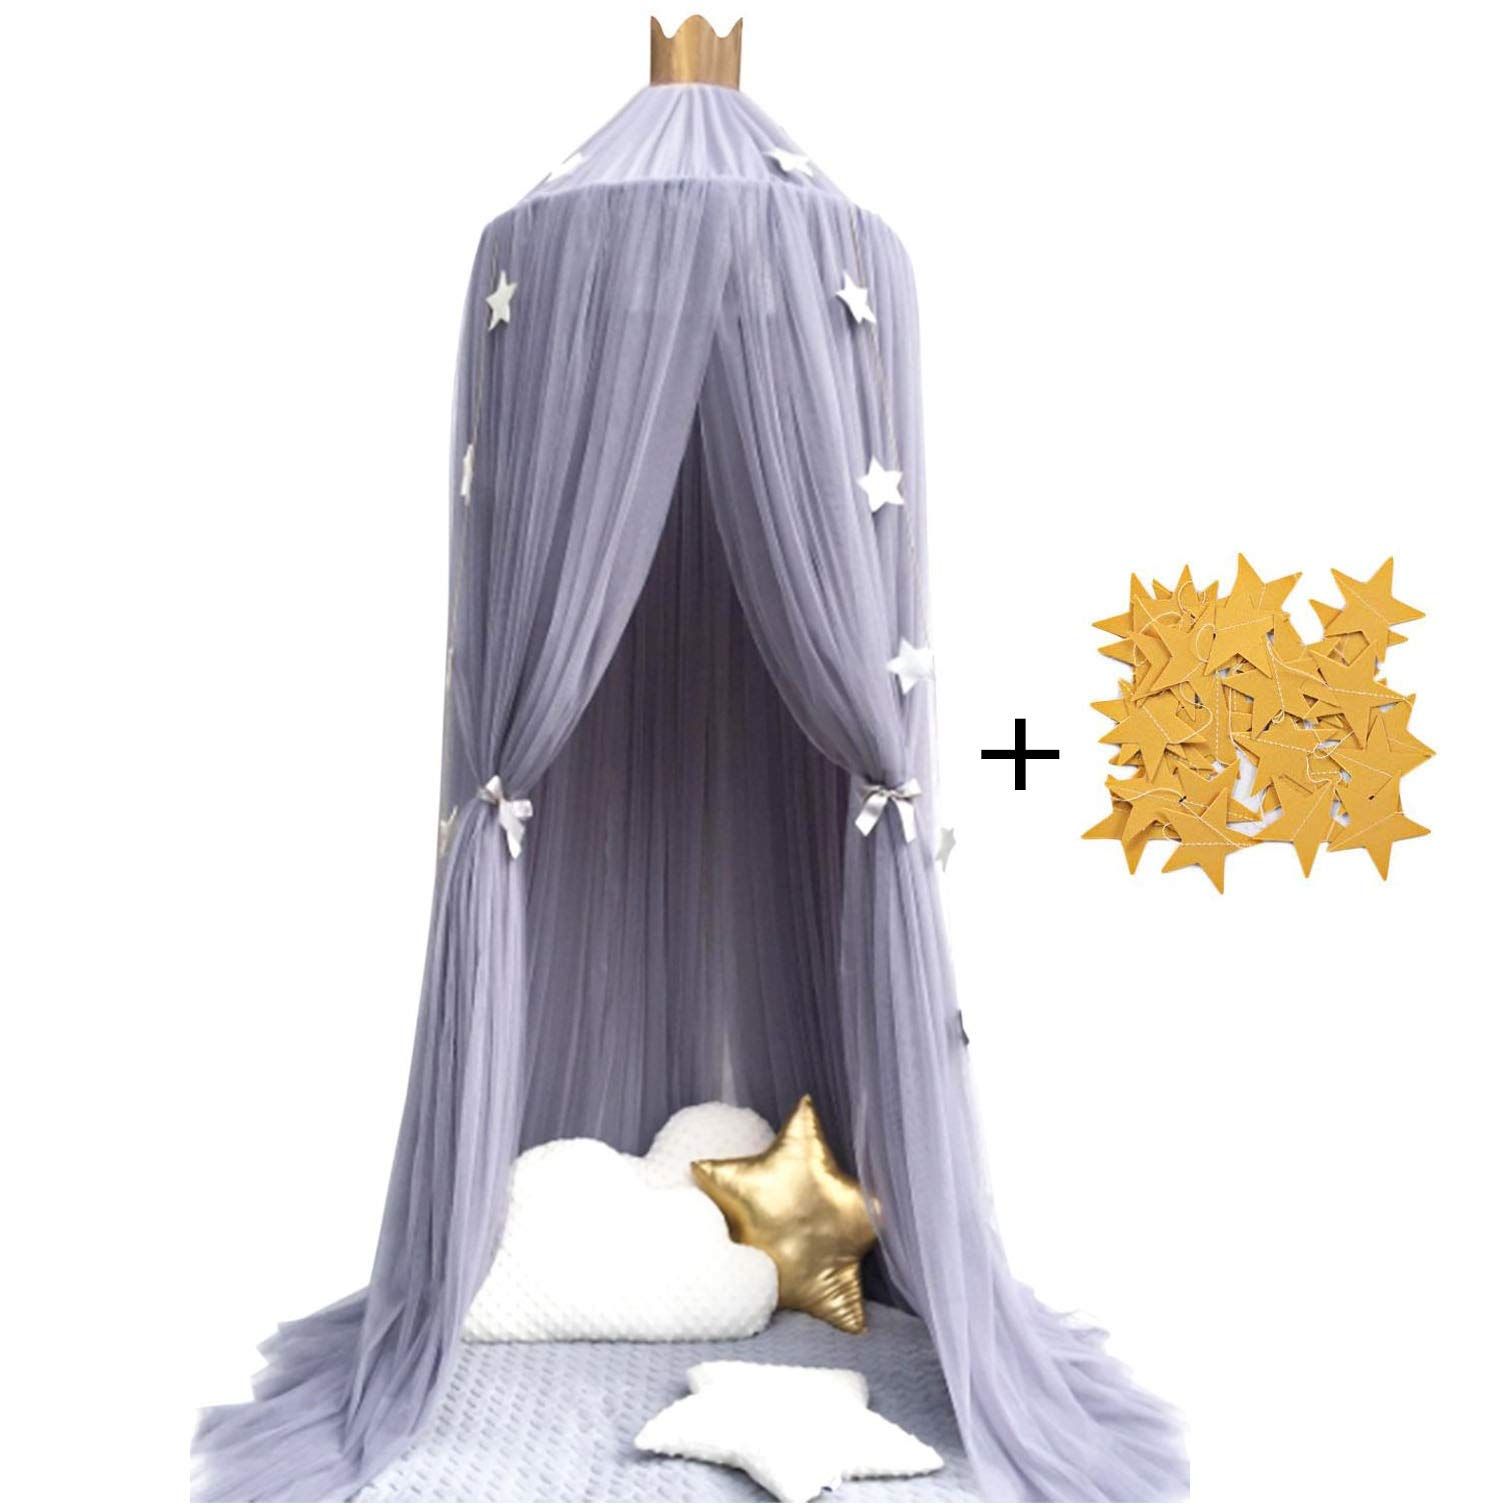 Trcoveric Princess Bed Canopies Premium Yarn Mosquito Net for Kids Baby Children's Room, Play Tent Bedding House Decor Reading Corner Gray